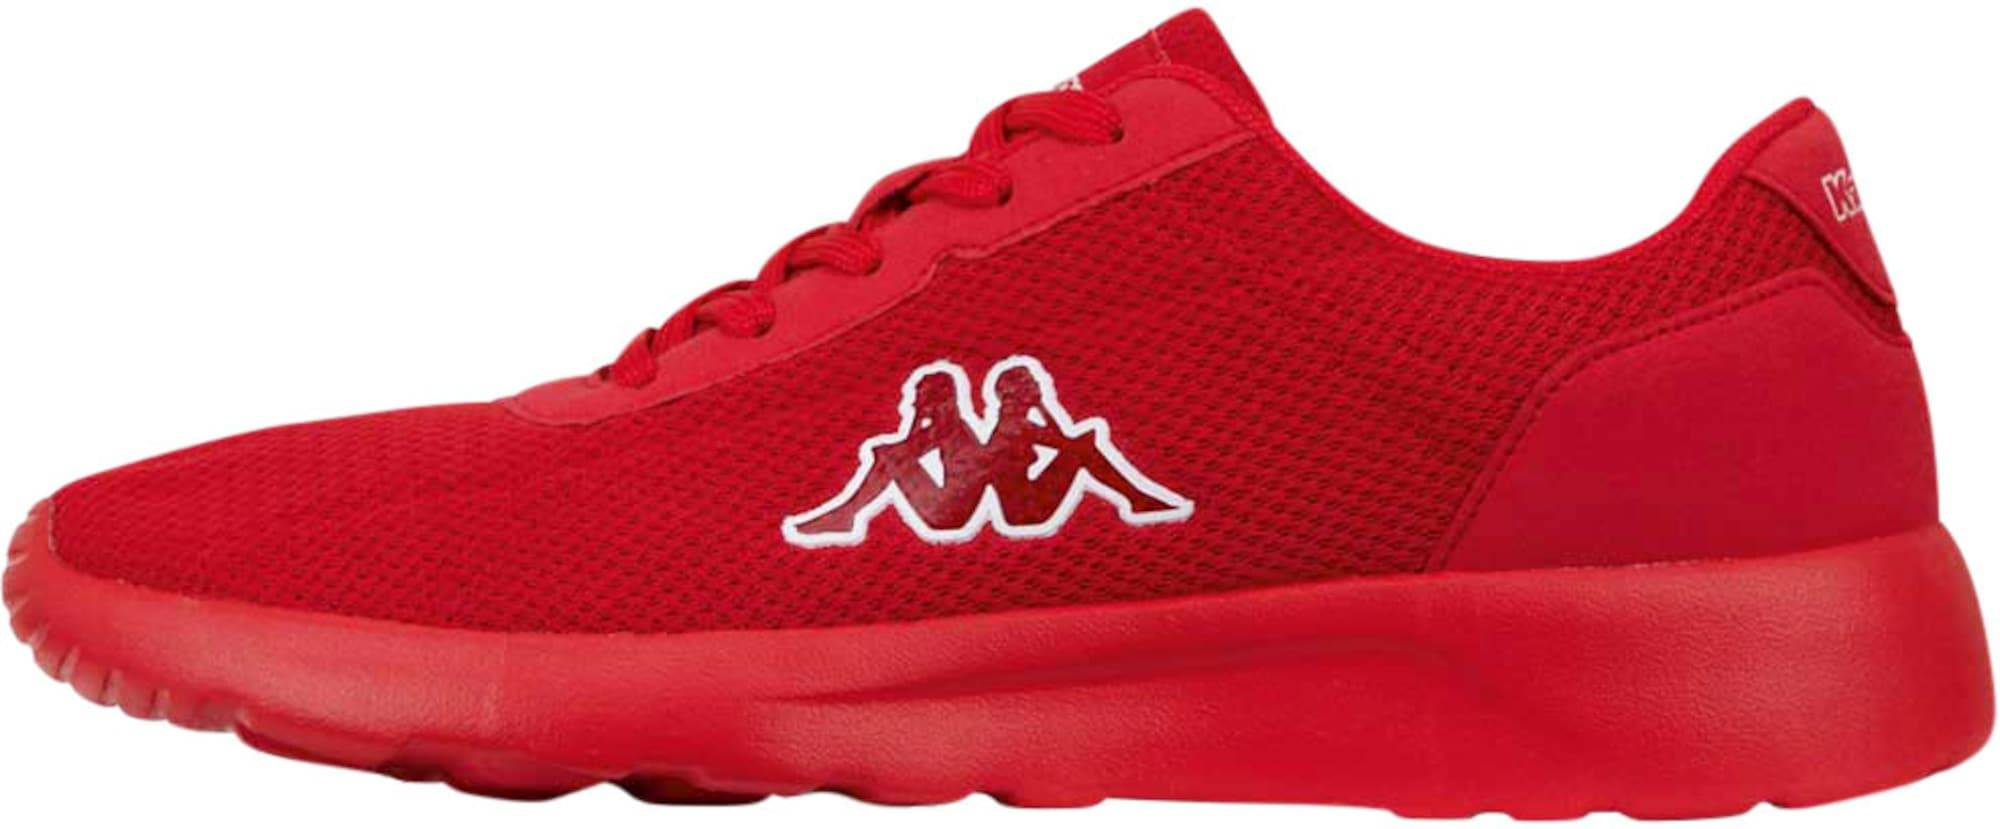 KAPPA Chaussure de course  - Rouge - Taille: 46 - male